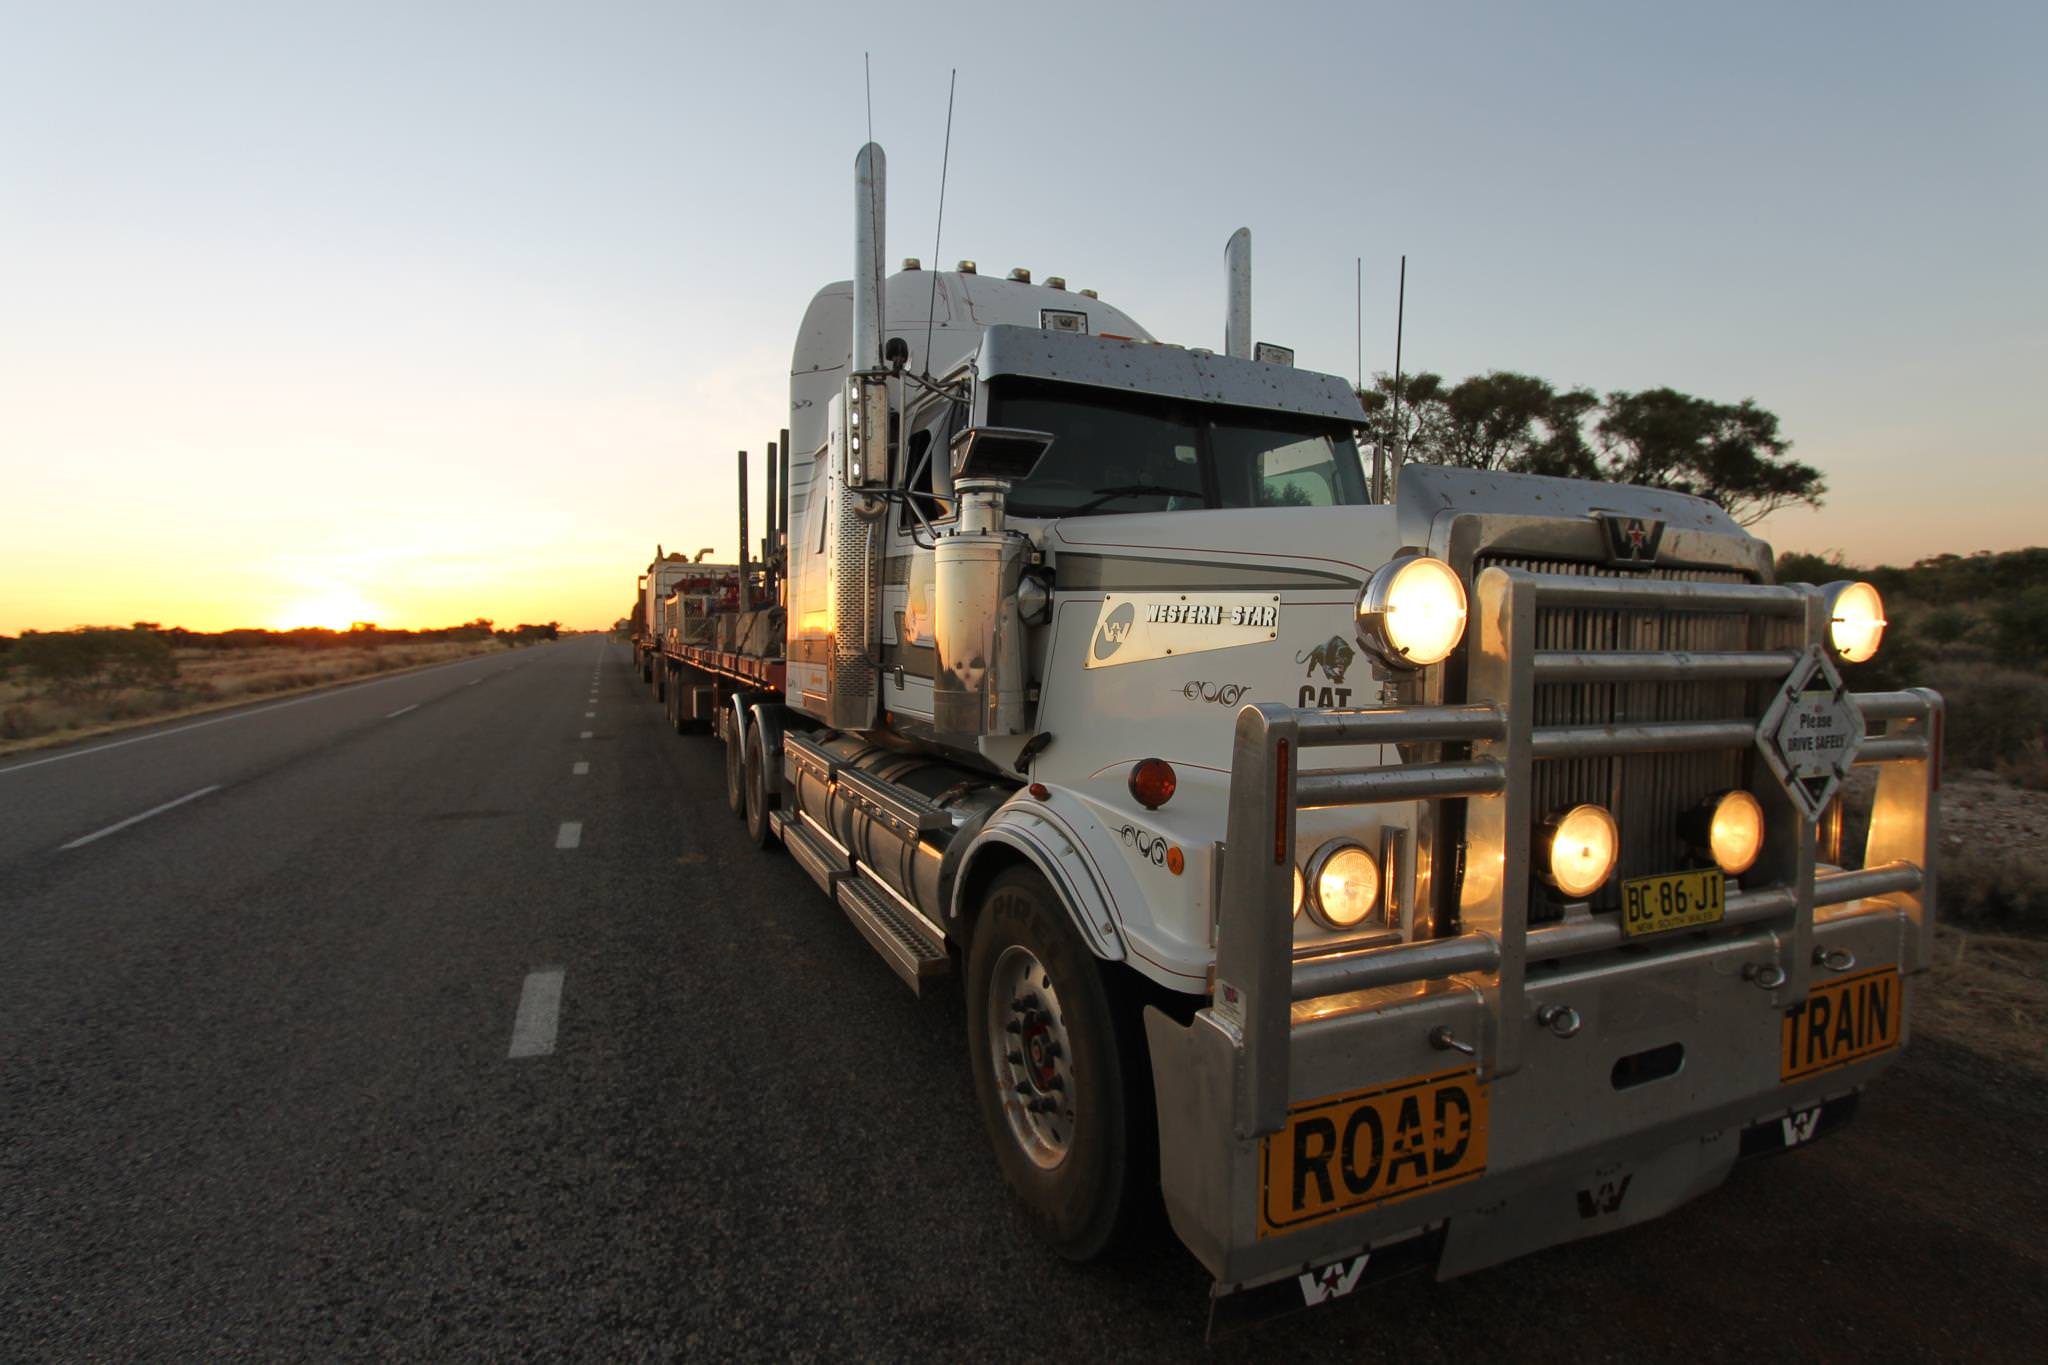 Western Star road train truck on Aussie road at sunset